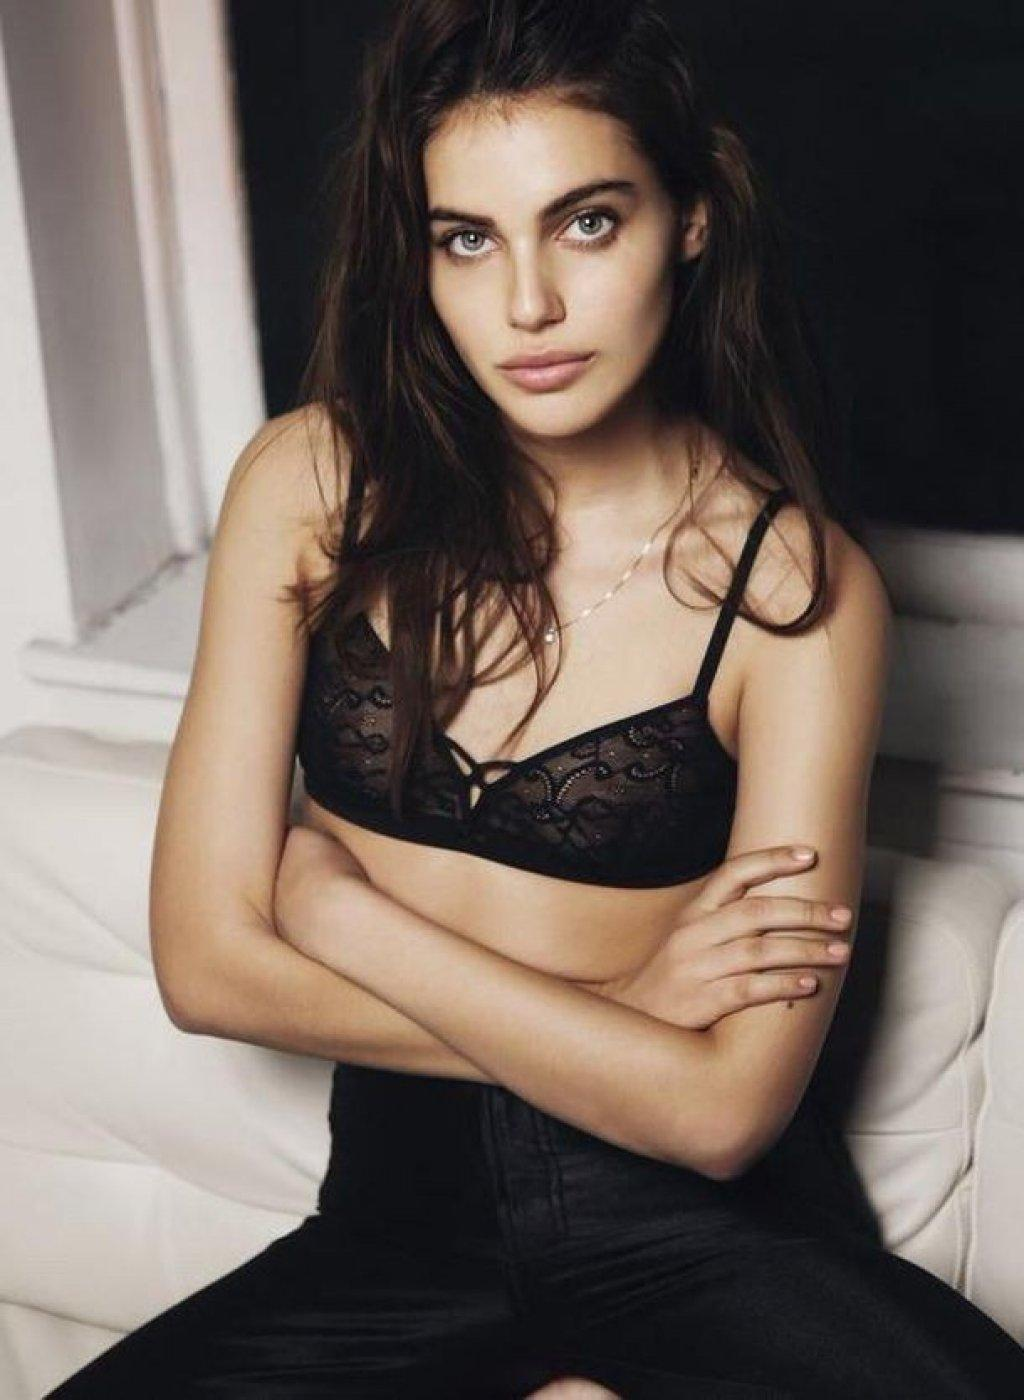 credit photo: intimissimi